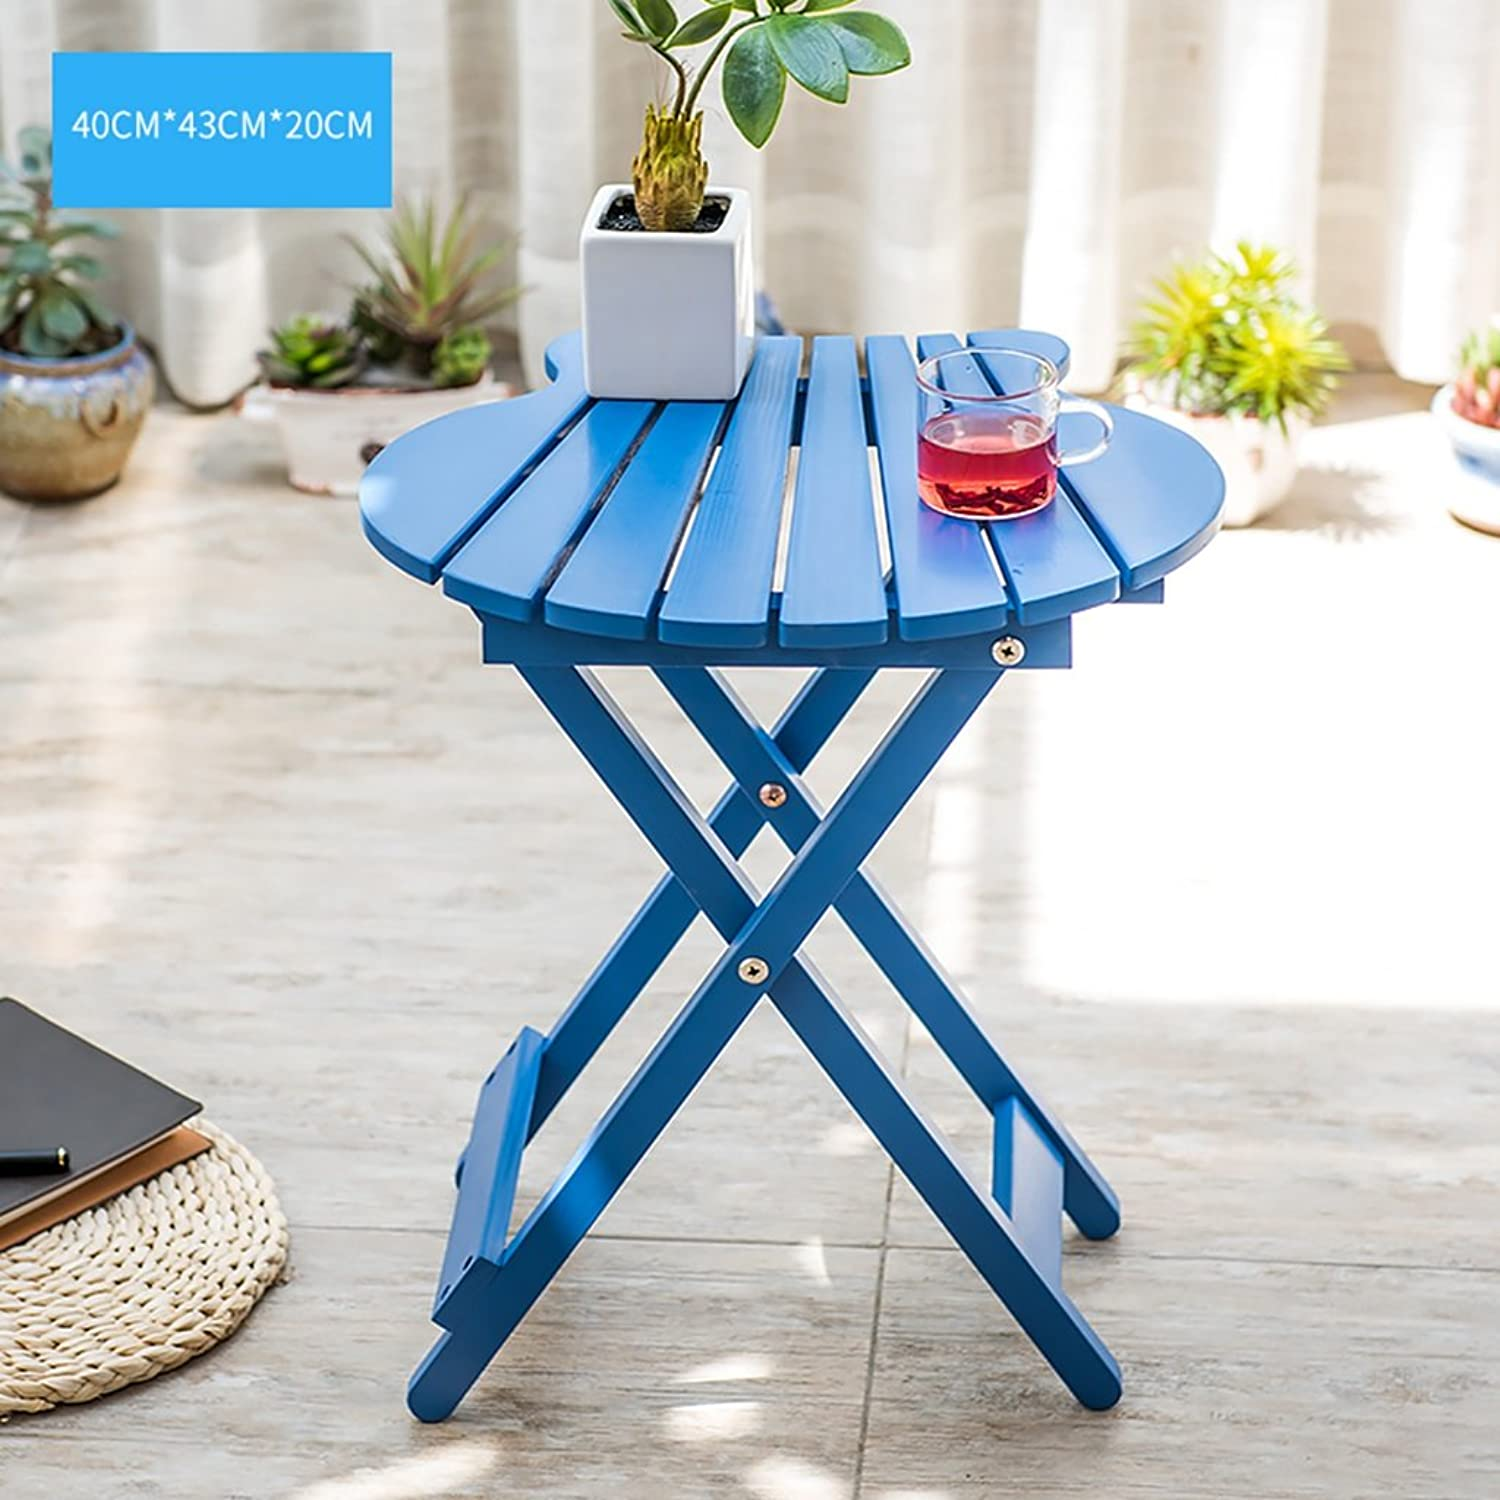 Simple Folding Free Inssizetion Table Imported Pine Desk Pure Handmade Coffee Table (color   bluee)